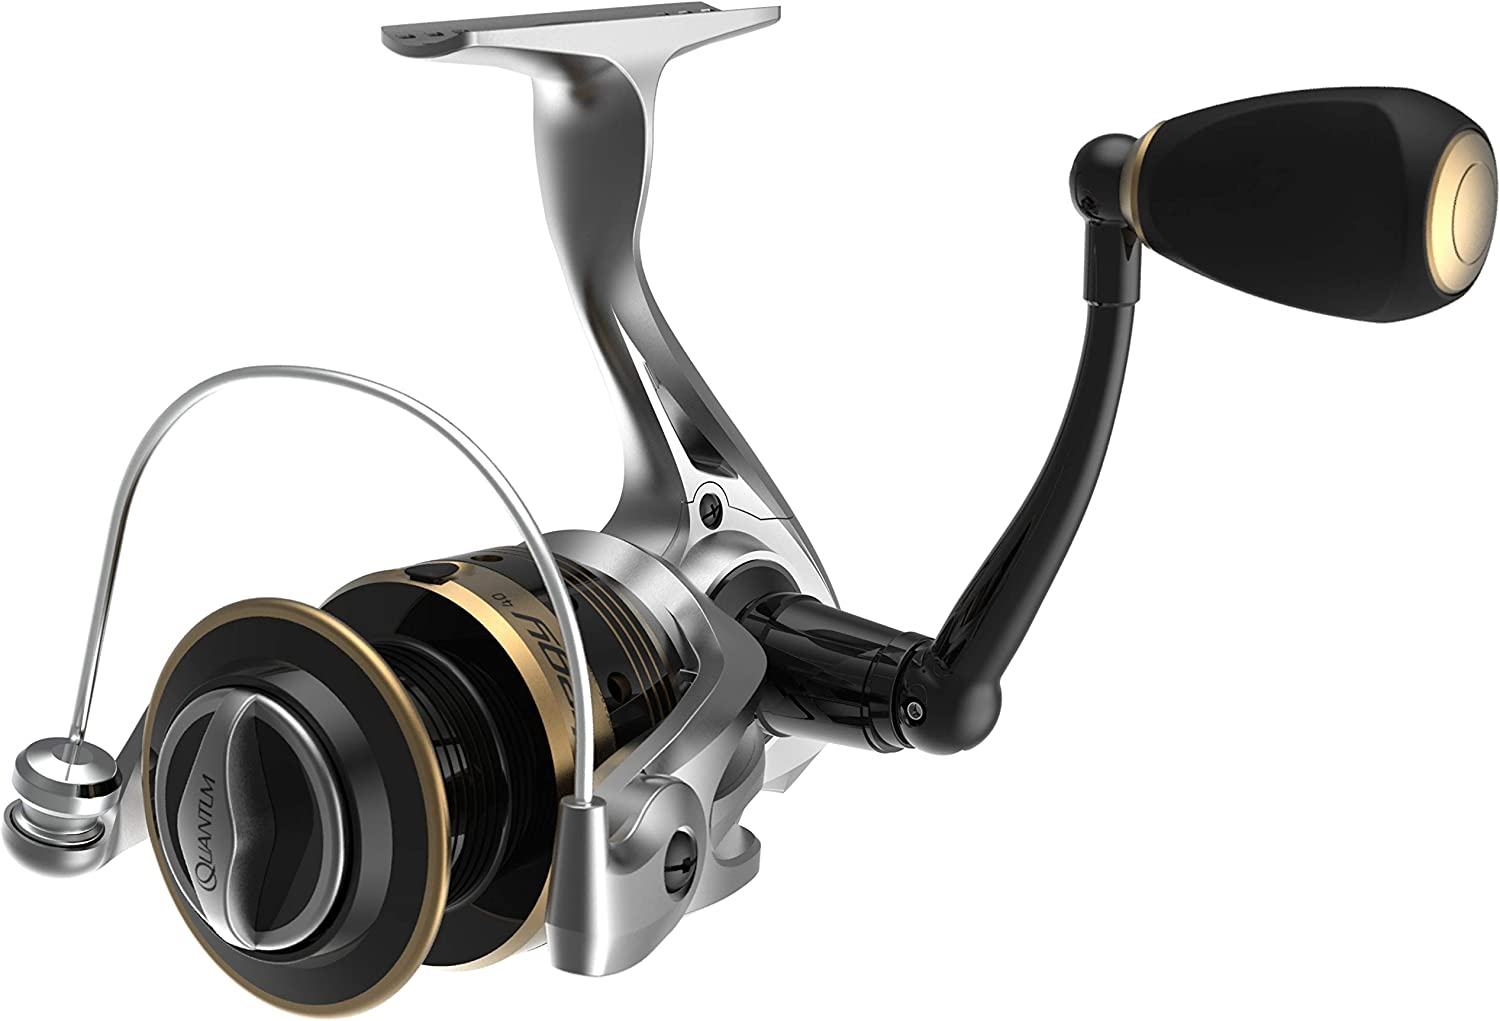 Quantum Strategy Spinning Fishing Reel, 6 Ball Bearings (5 + Clutch) with a Smooth and Powerful 5.2:1 Gear Ratio, Continuous Anti-Reverse Clutch with a Front-Adjustable Drag, 20-Size